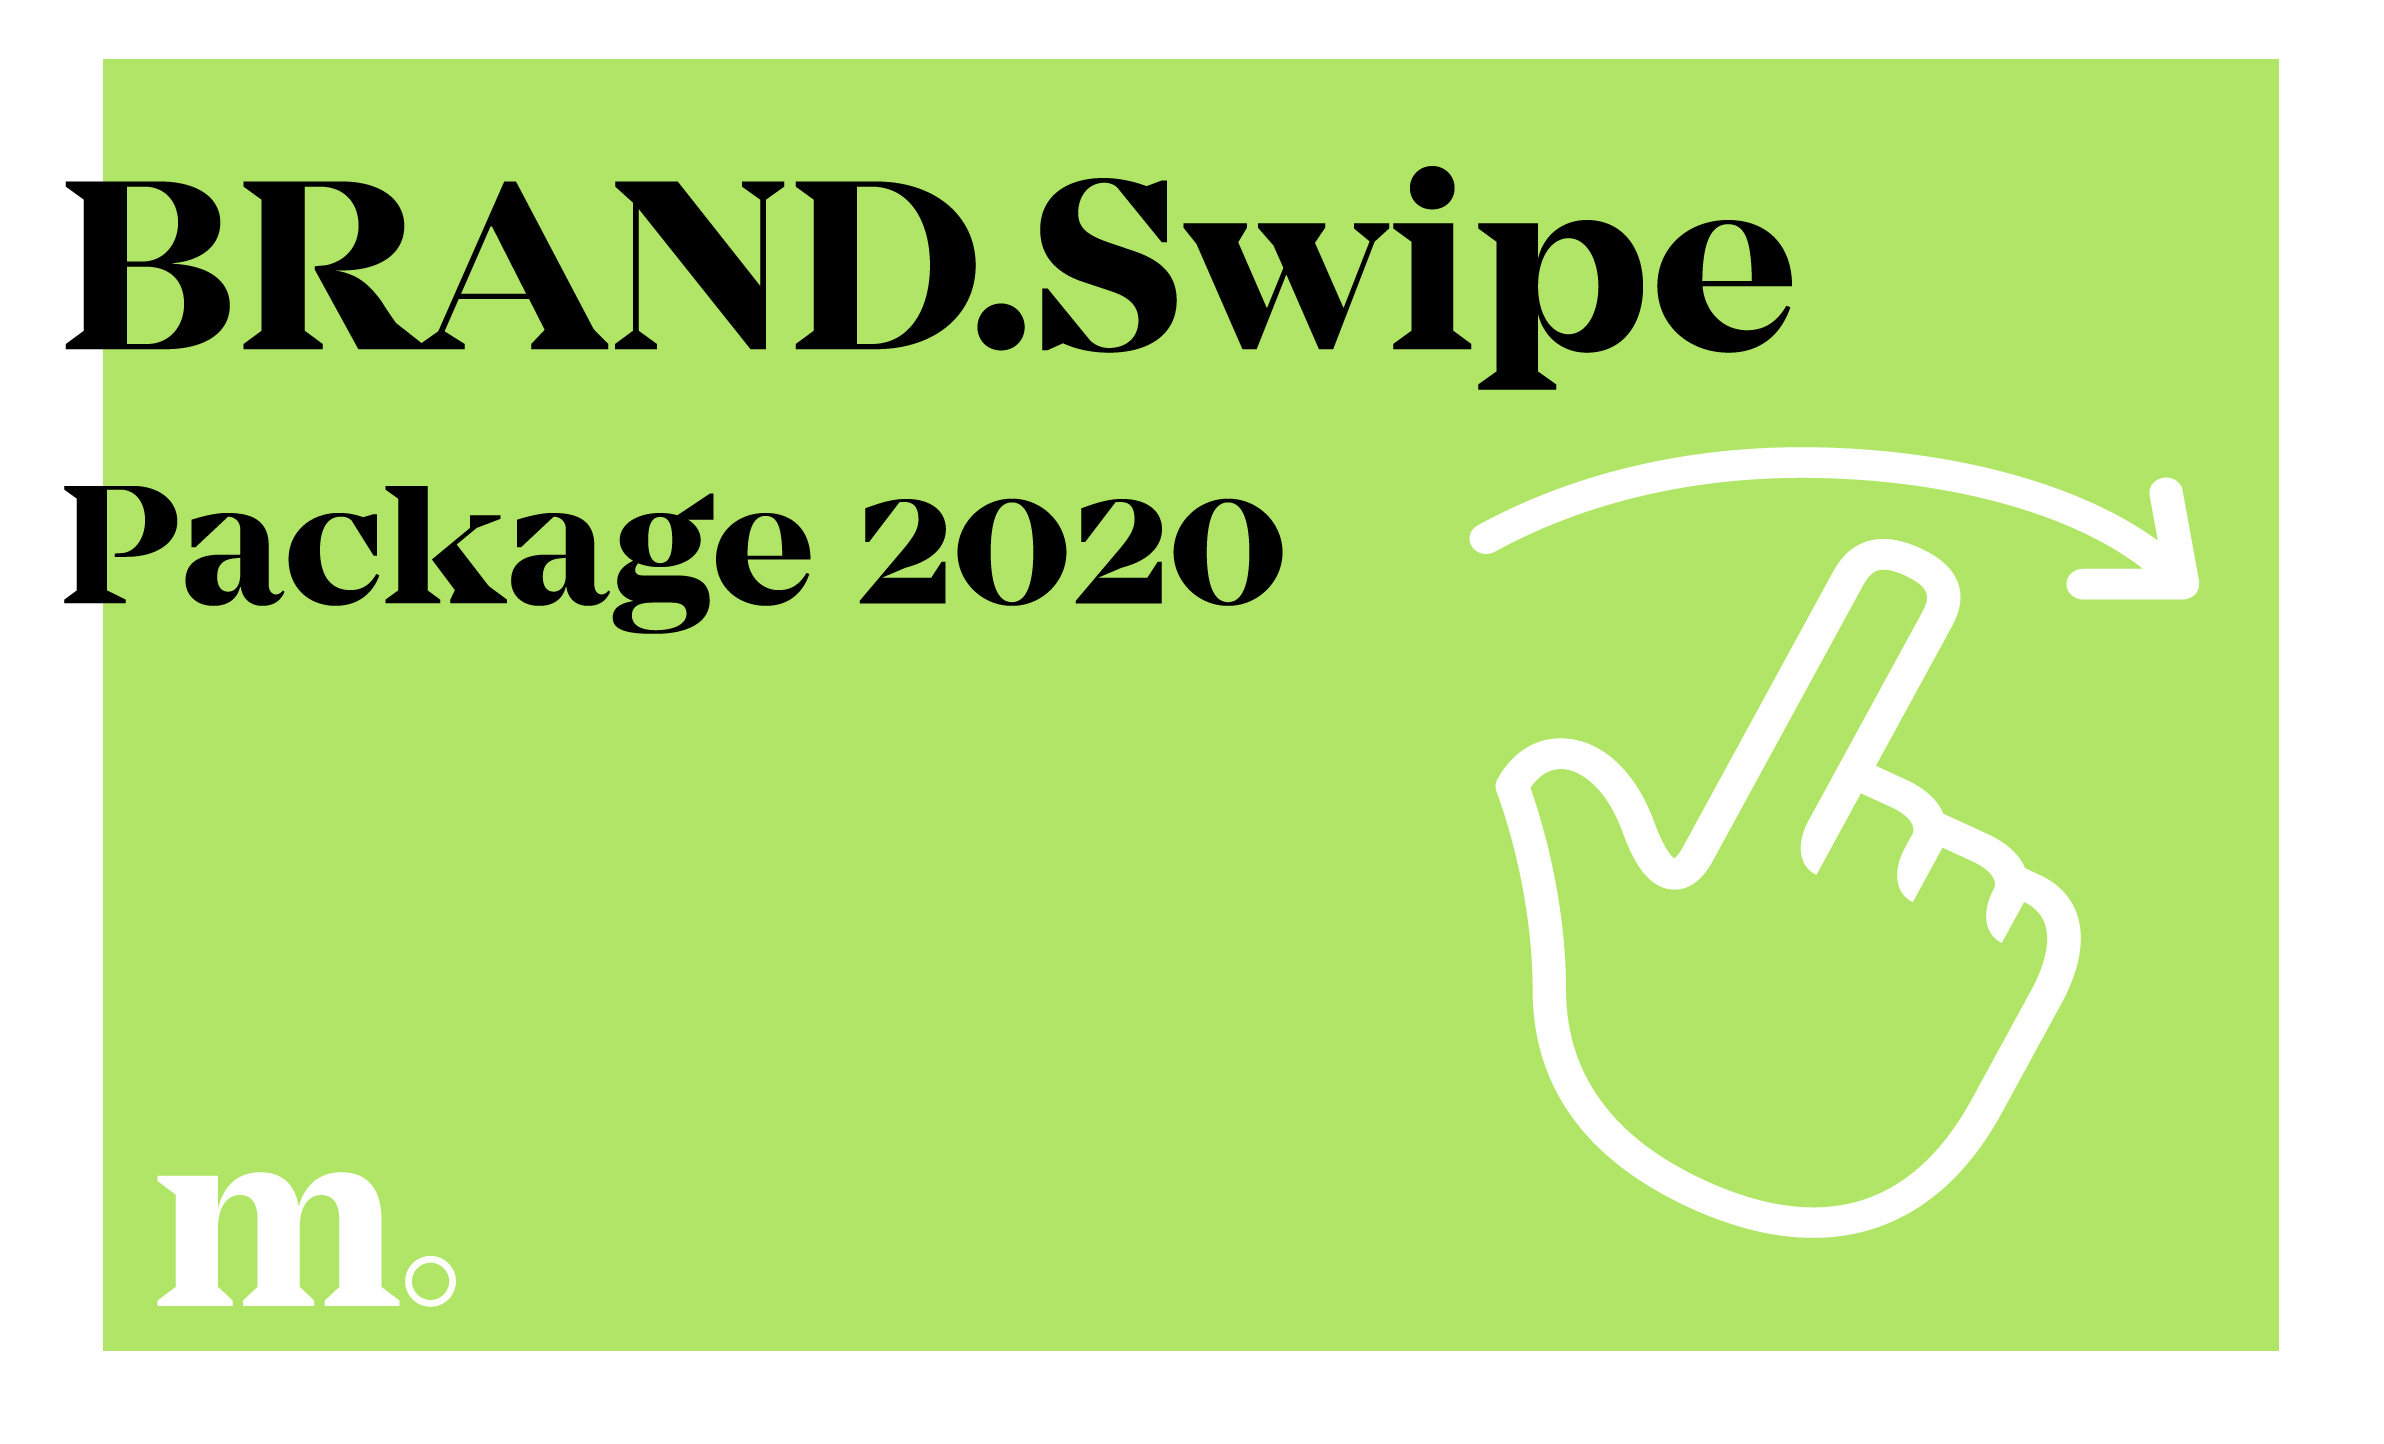 BRAND.Swipe Package